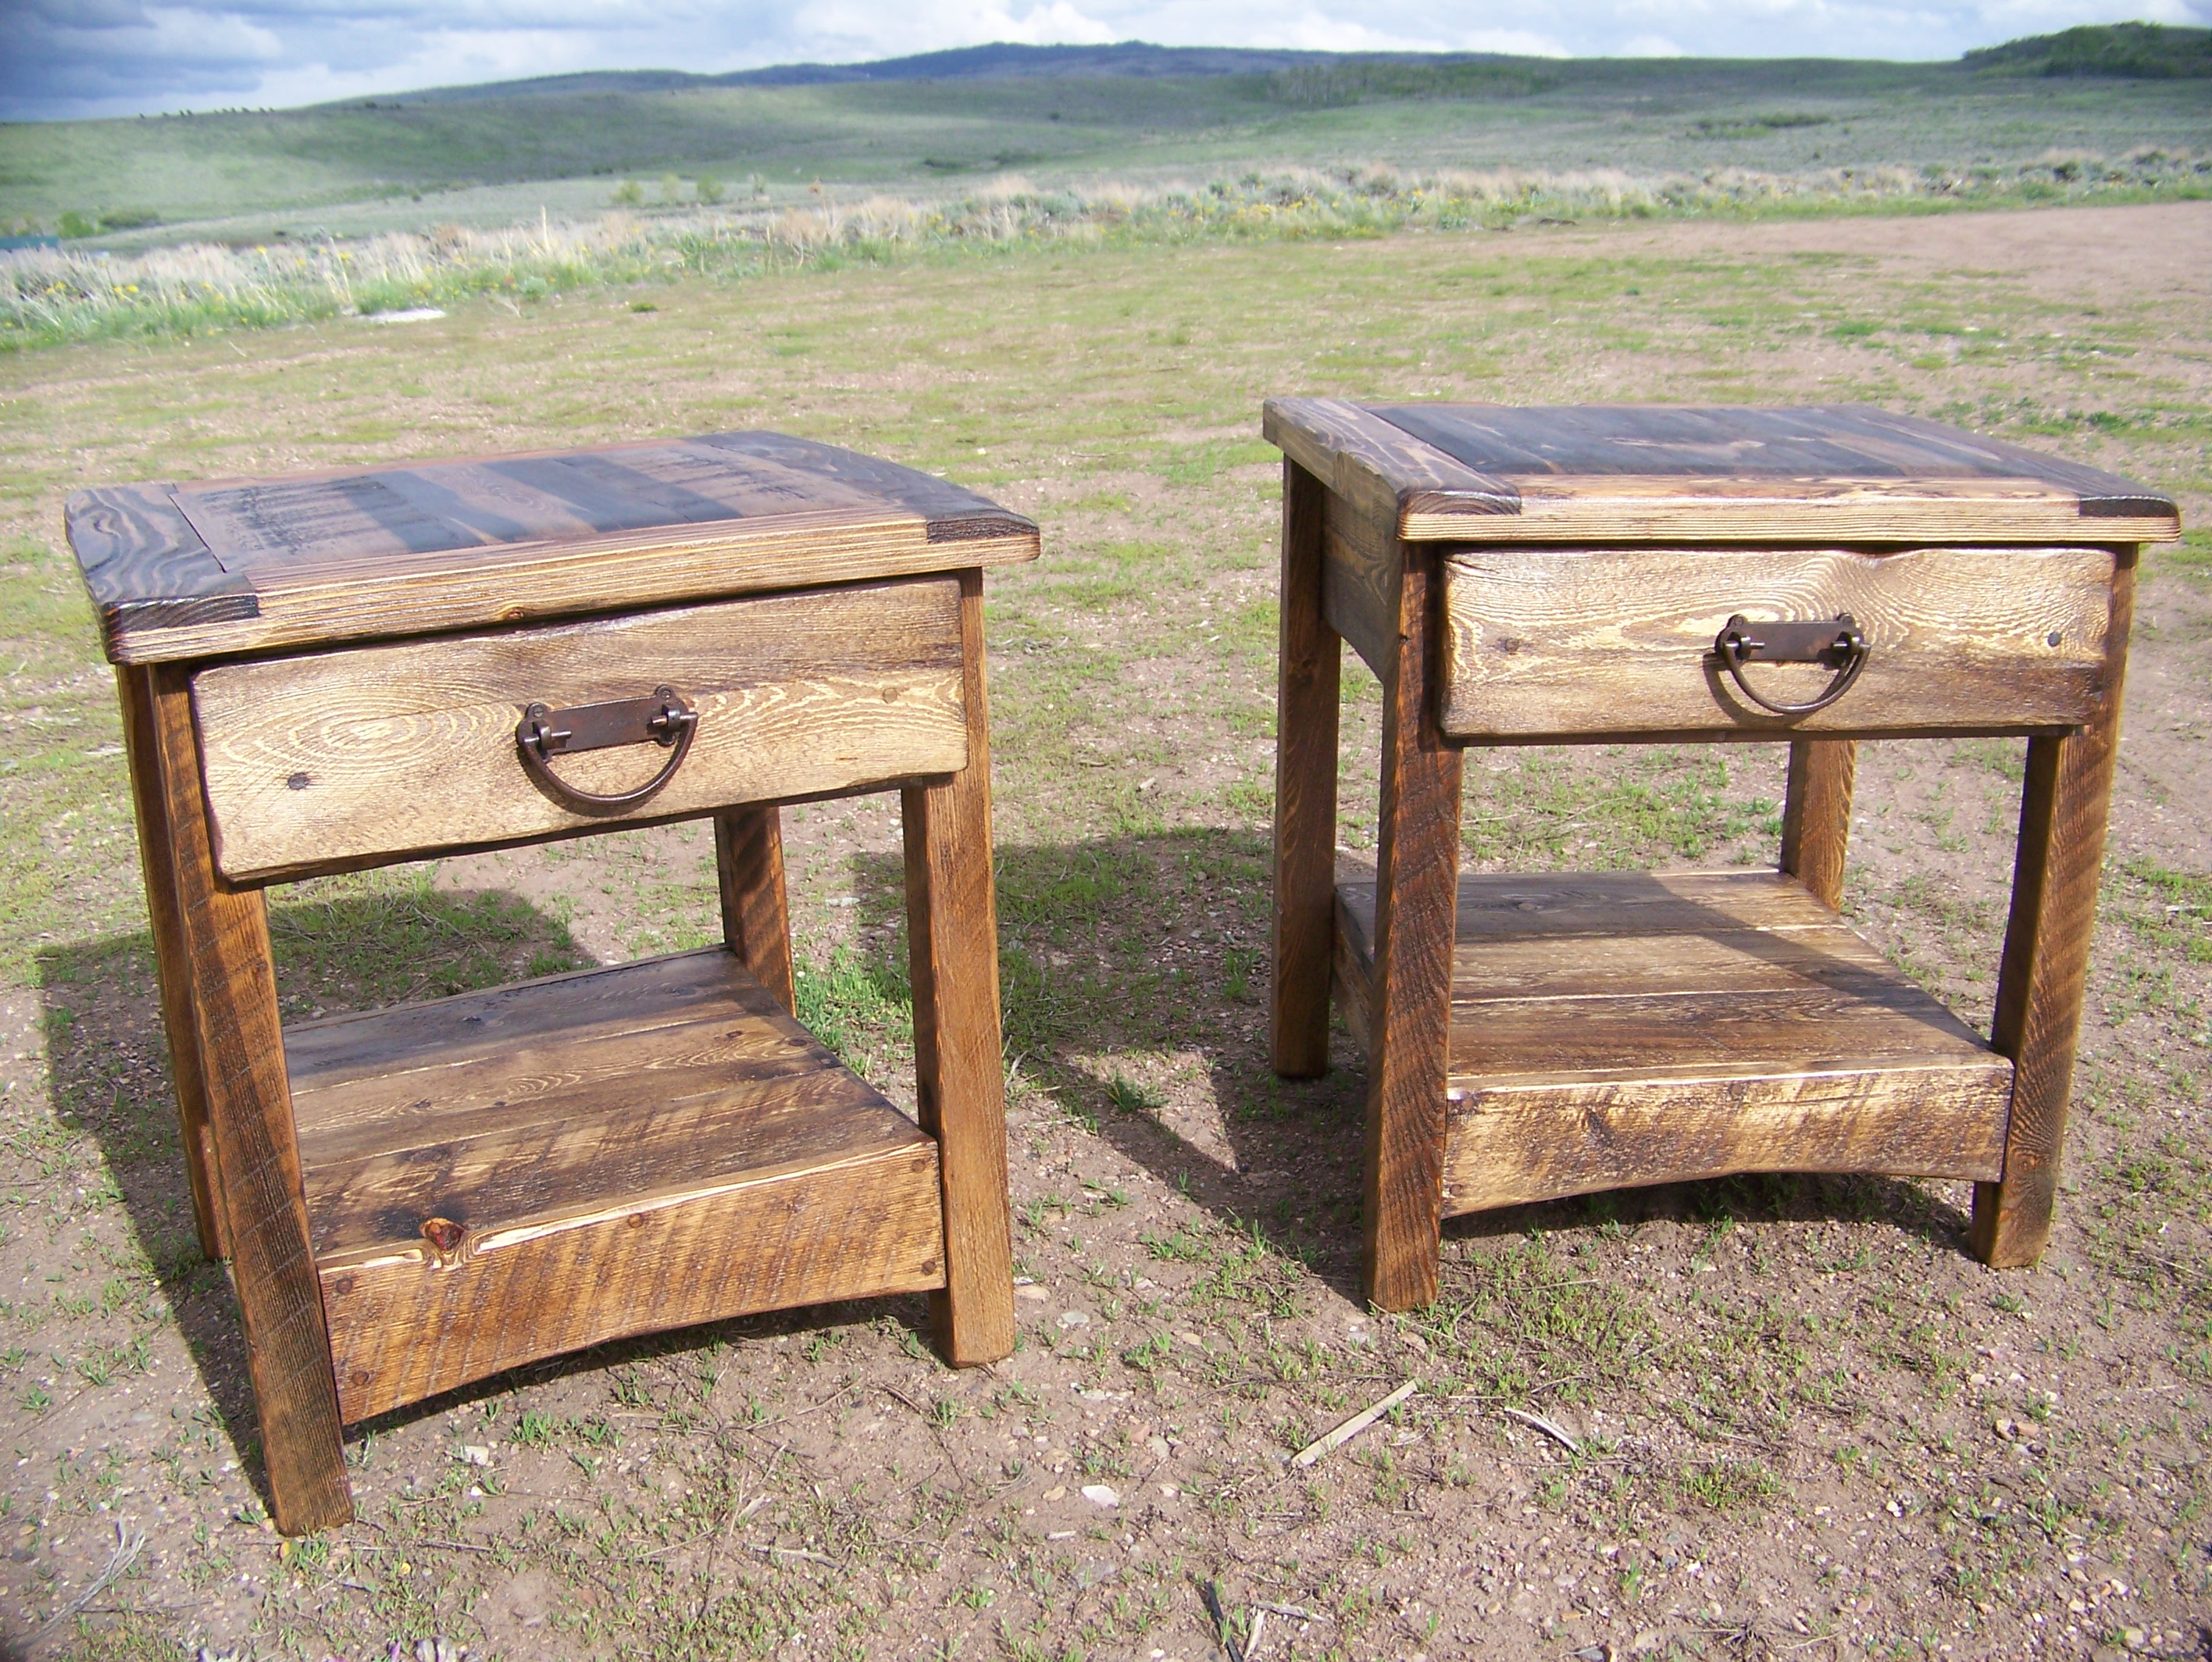 popular rustic end tables and coffee with about which one cabin reclaimed wood table plans sofa toronto iron crib diy small dog house clear acrylic side ideas for living room the